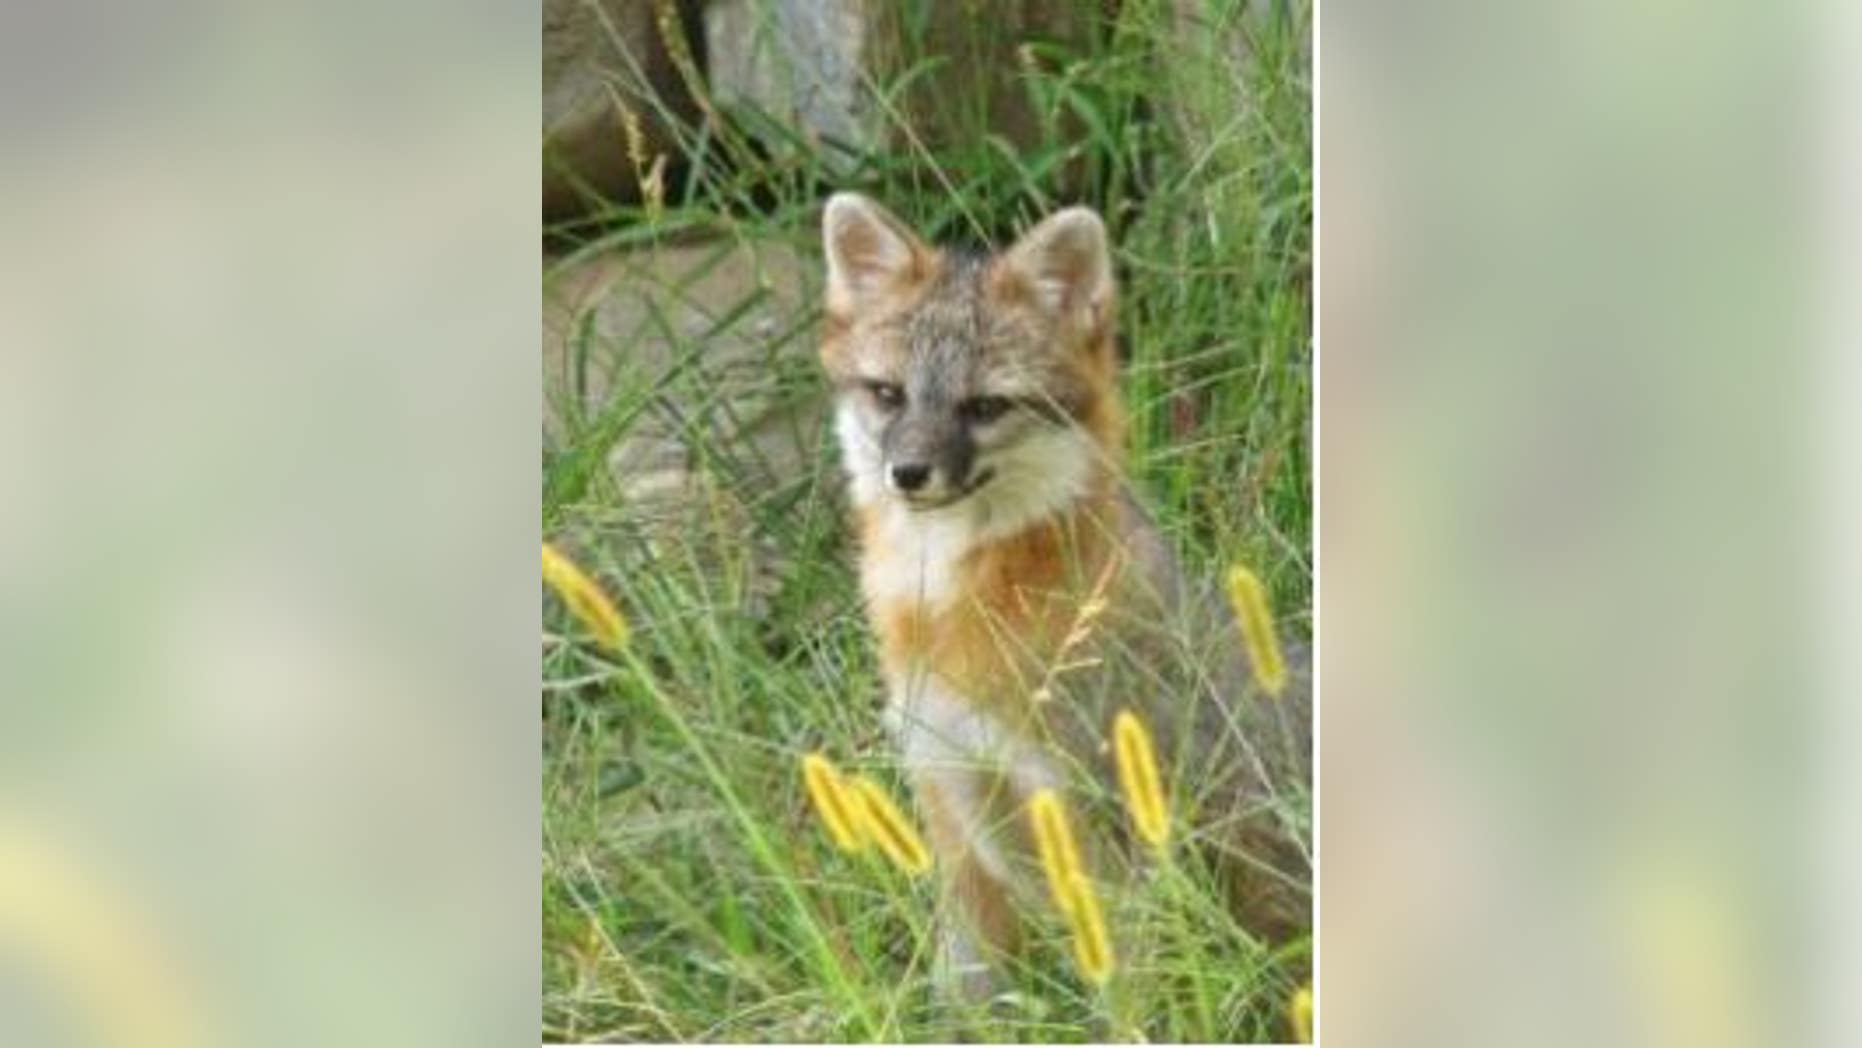 Gray fox are commonly found in southern and central Maine, according to the Maine Department of Inland Fisheries and Wildlife.